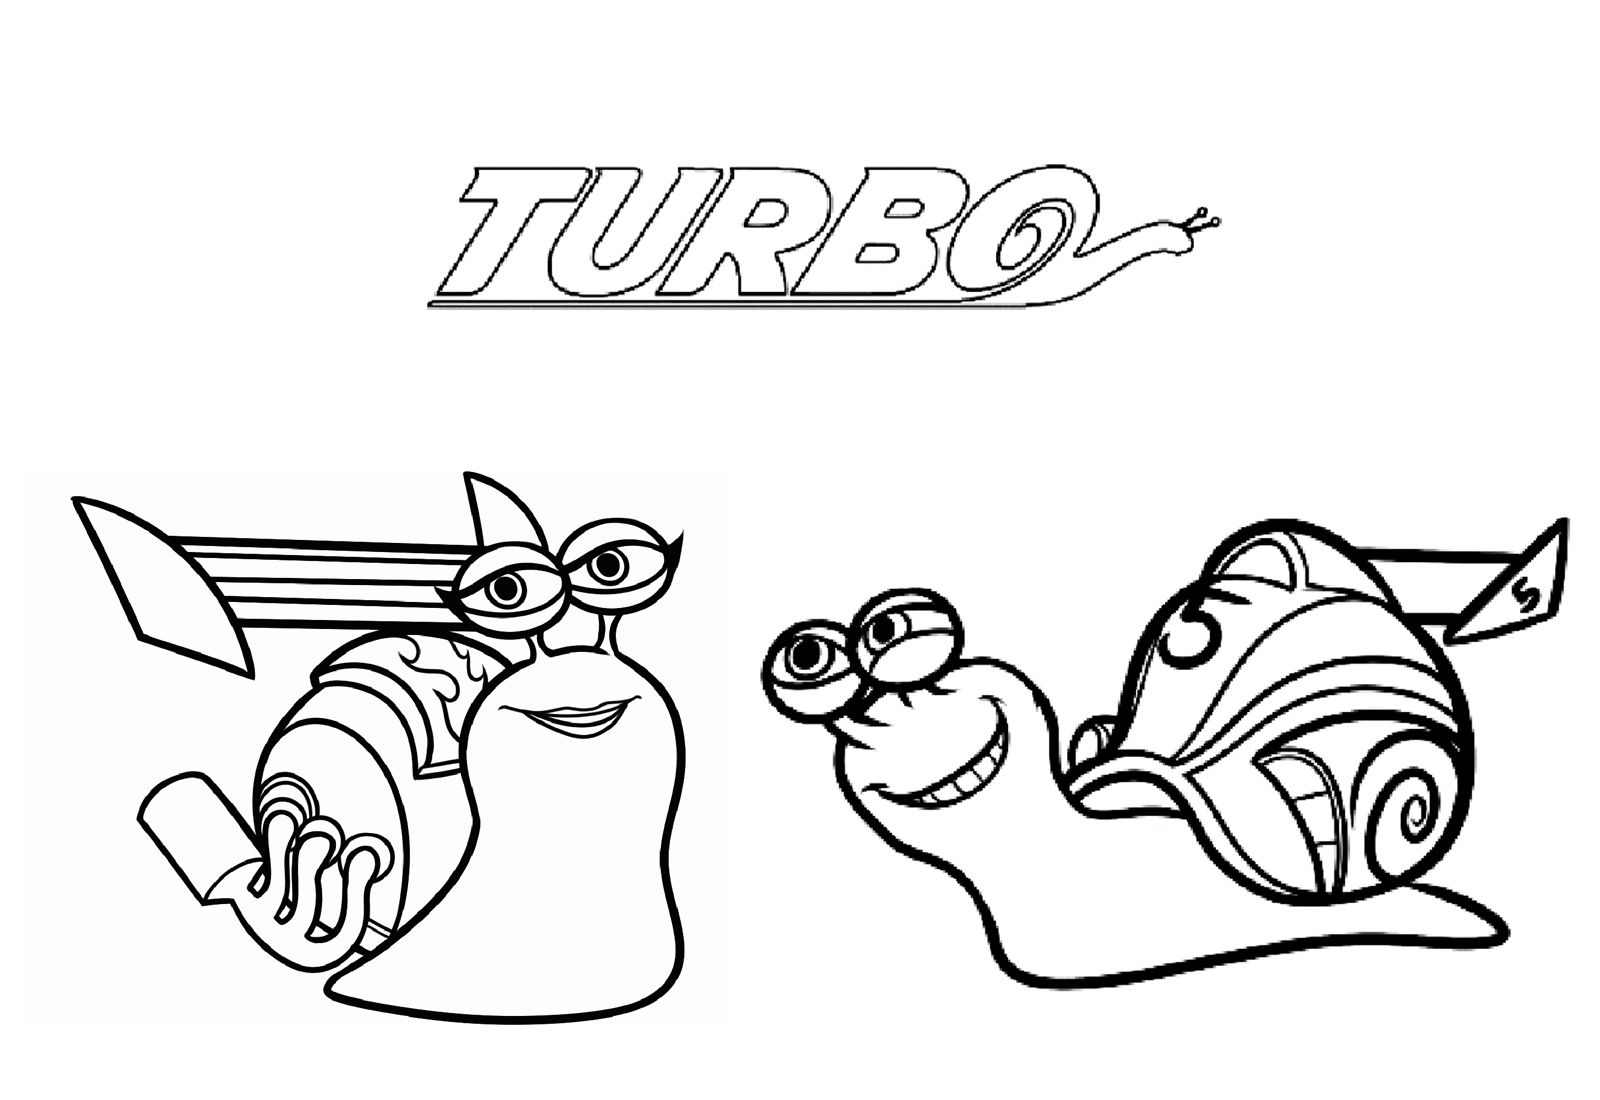 95 dessins de coloriage escargot turbo imprimer - Coloriage escargot turbo ...